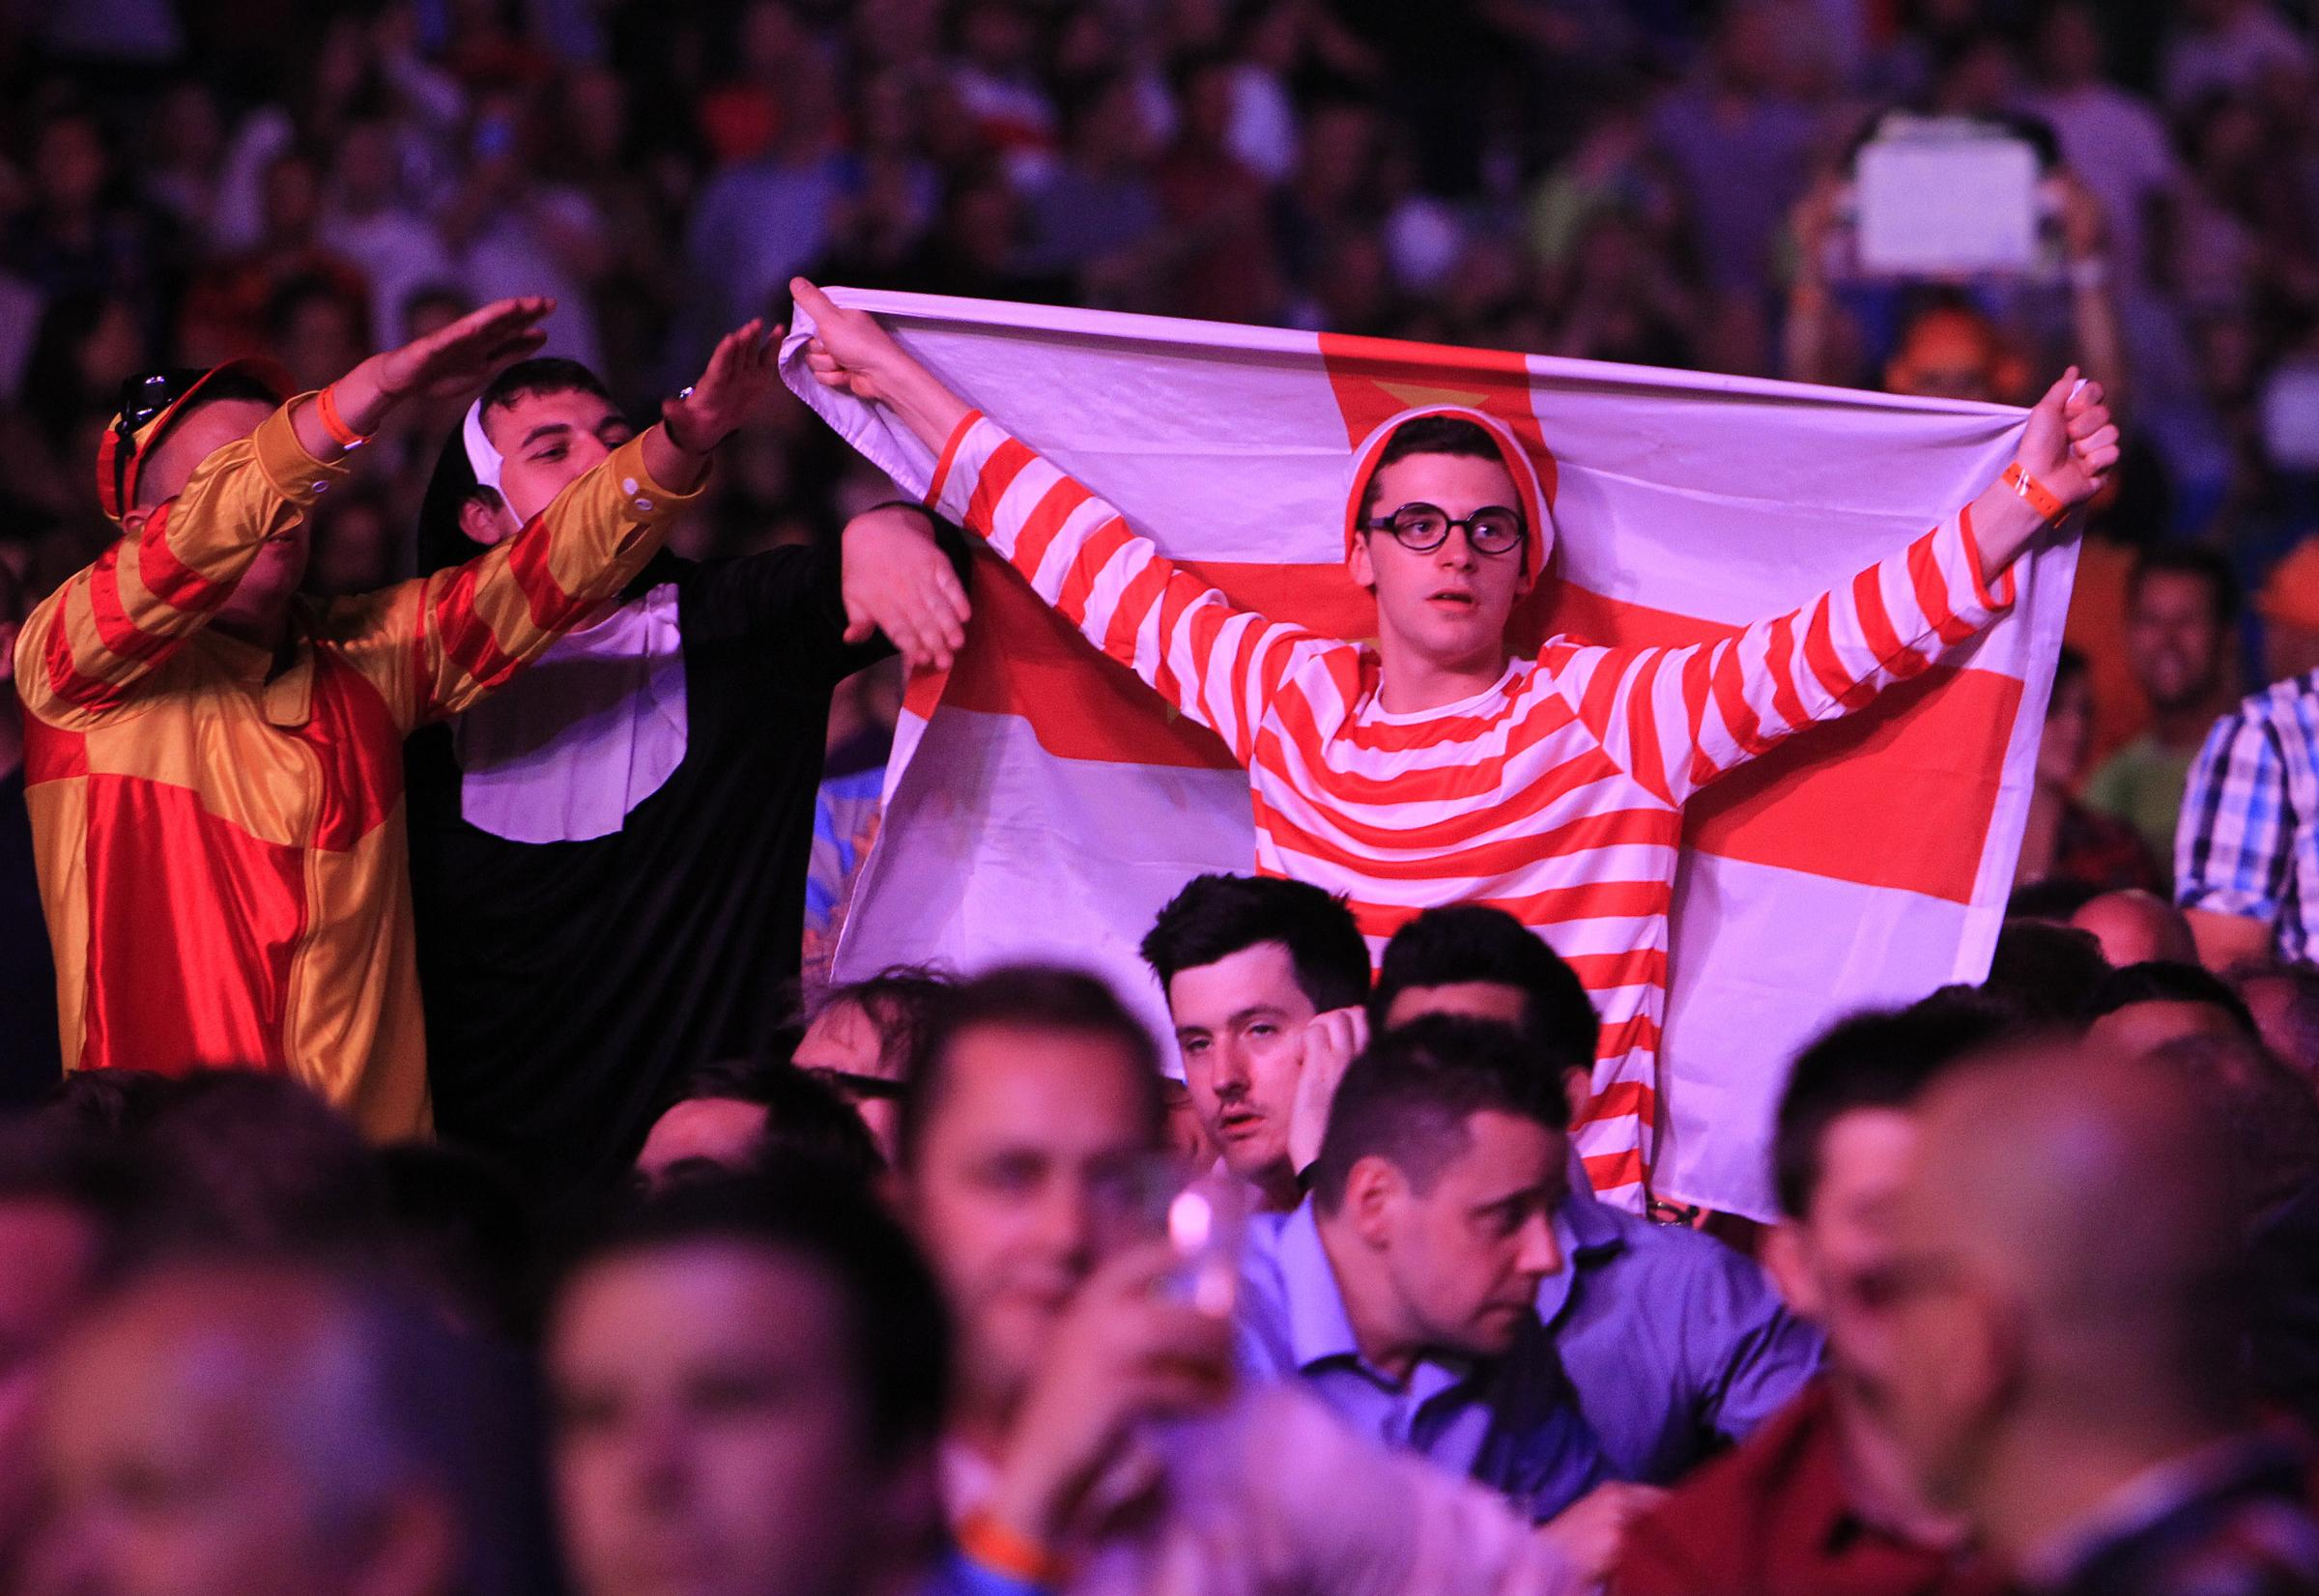 News Shopper: There were the usual fancy dress contingent in the packed O2 crowd including this Where's Wally fan